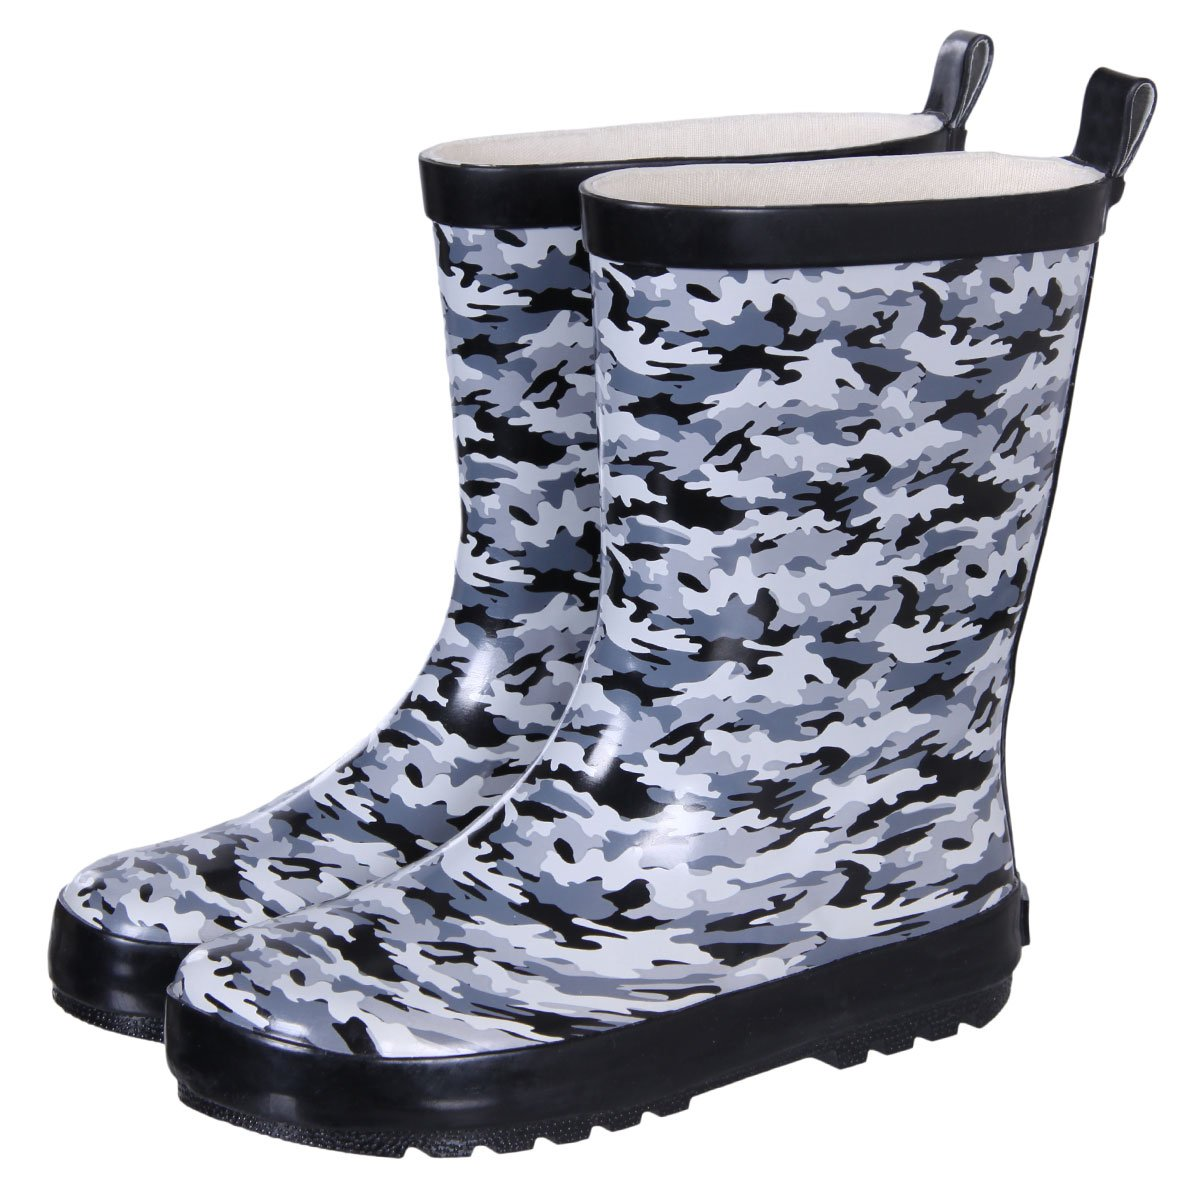 Dingbats Kids Rubber Rainboots with Gray Camouflage Theme